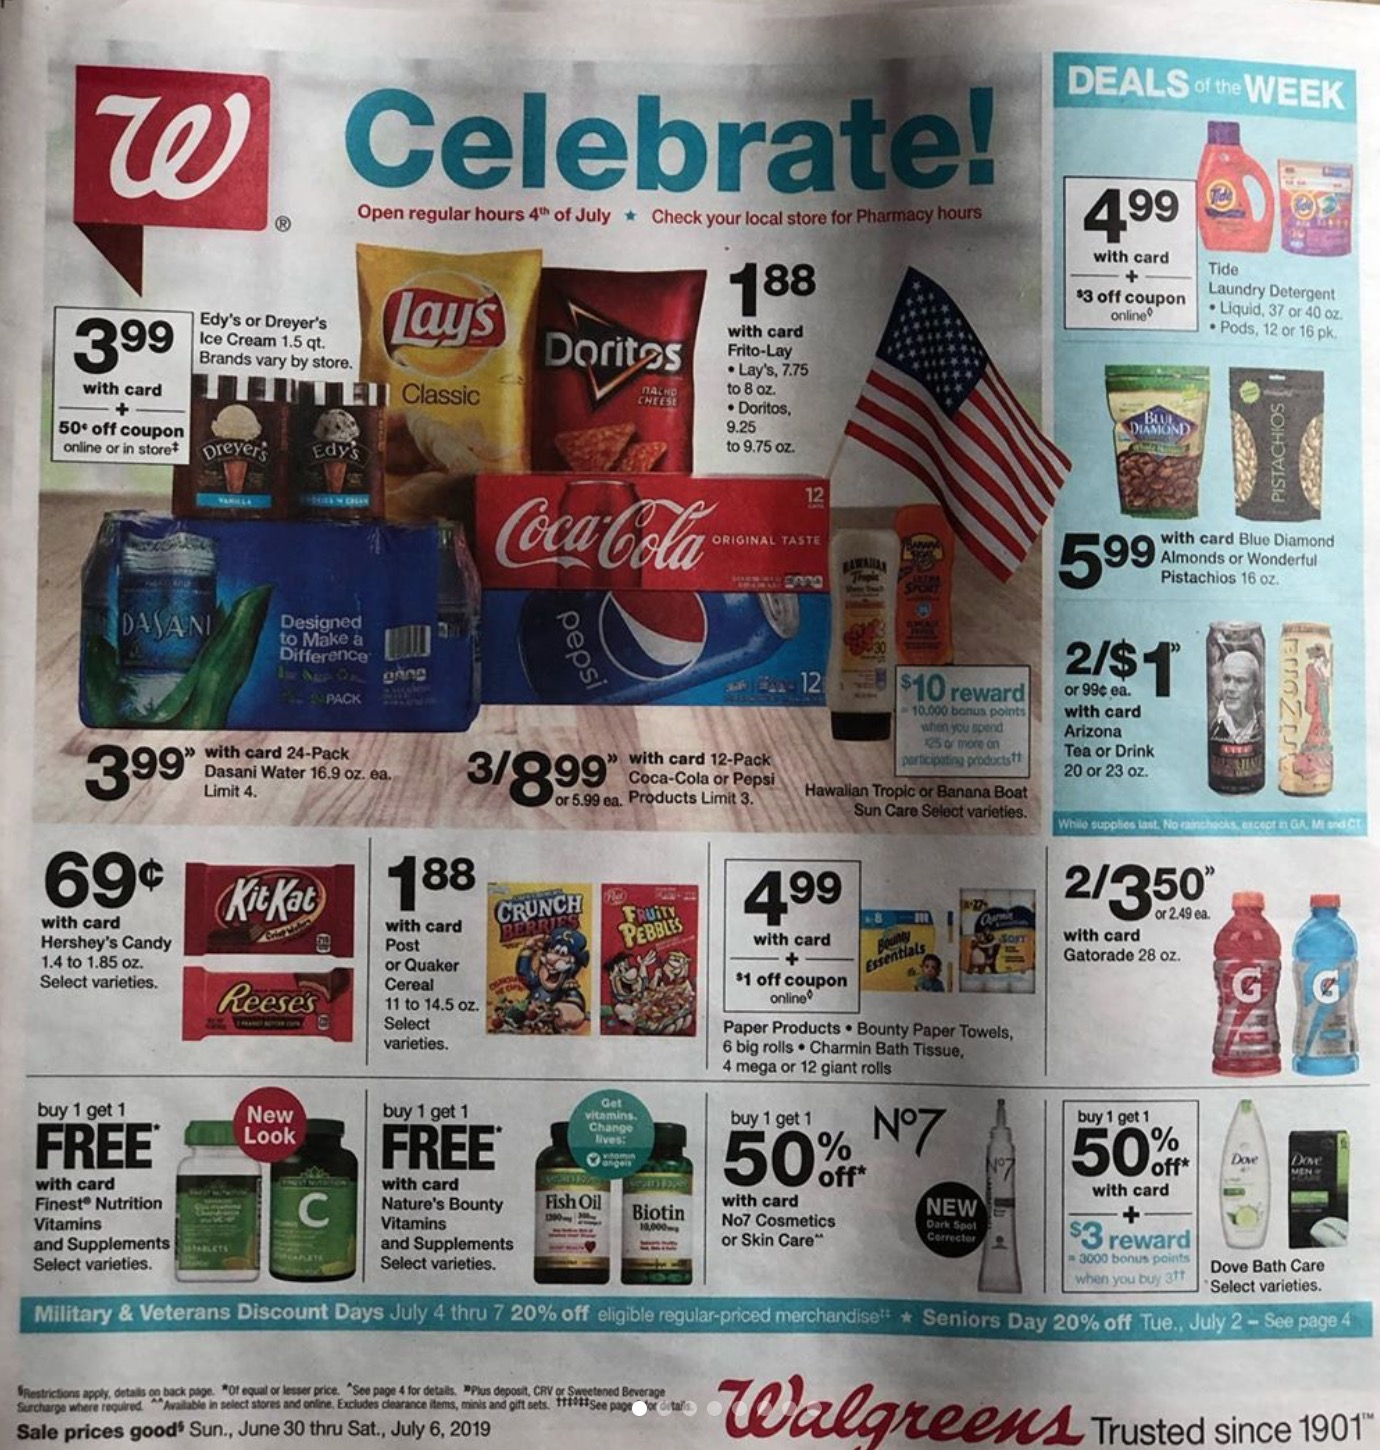 Walgreens Weekly Ad Preview Jun 30 - Jul 6, 2019